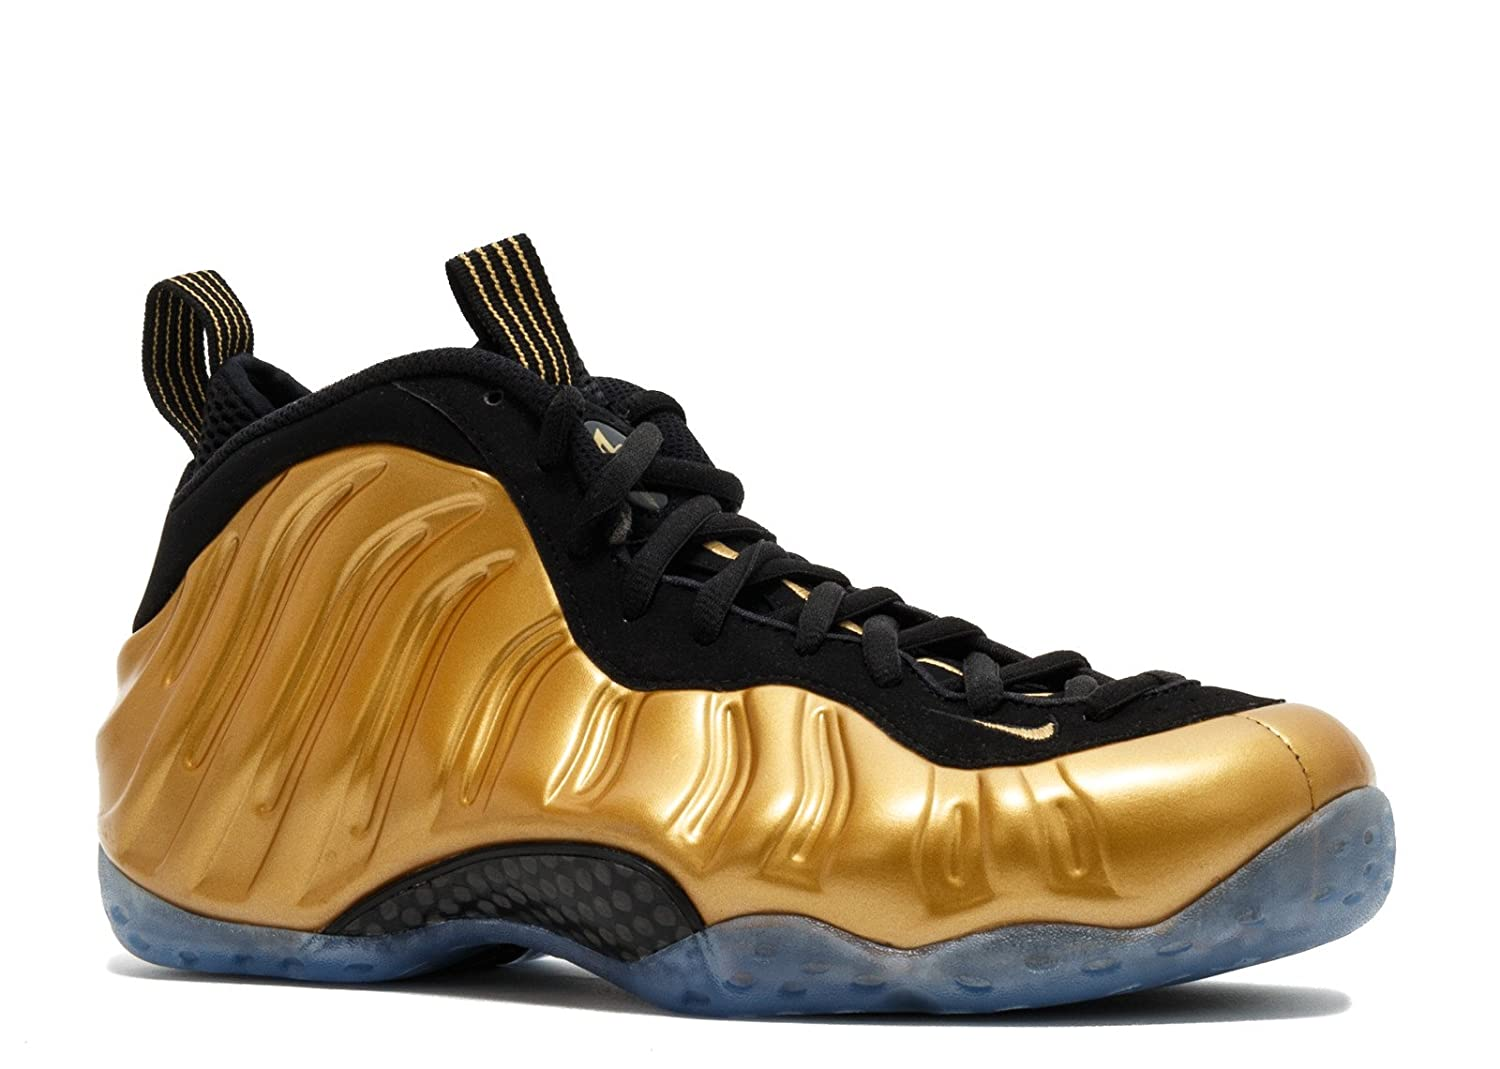 105a2820c29 NIKE AIR Foamposite ONE Metallic Gold Men s Trainer  Amazon.co.uk  Shoes    Bags